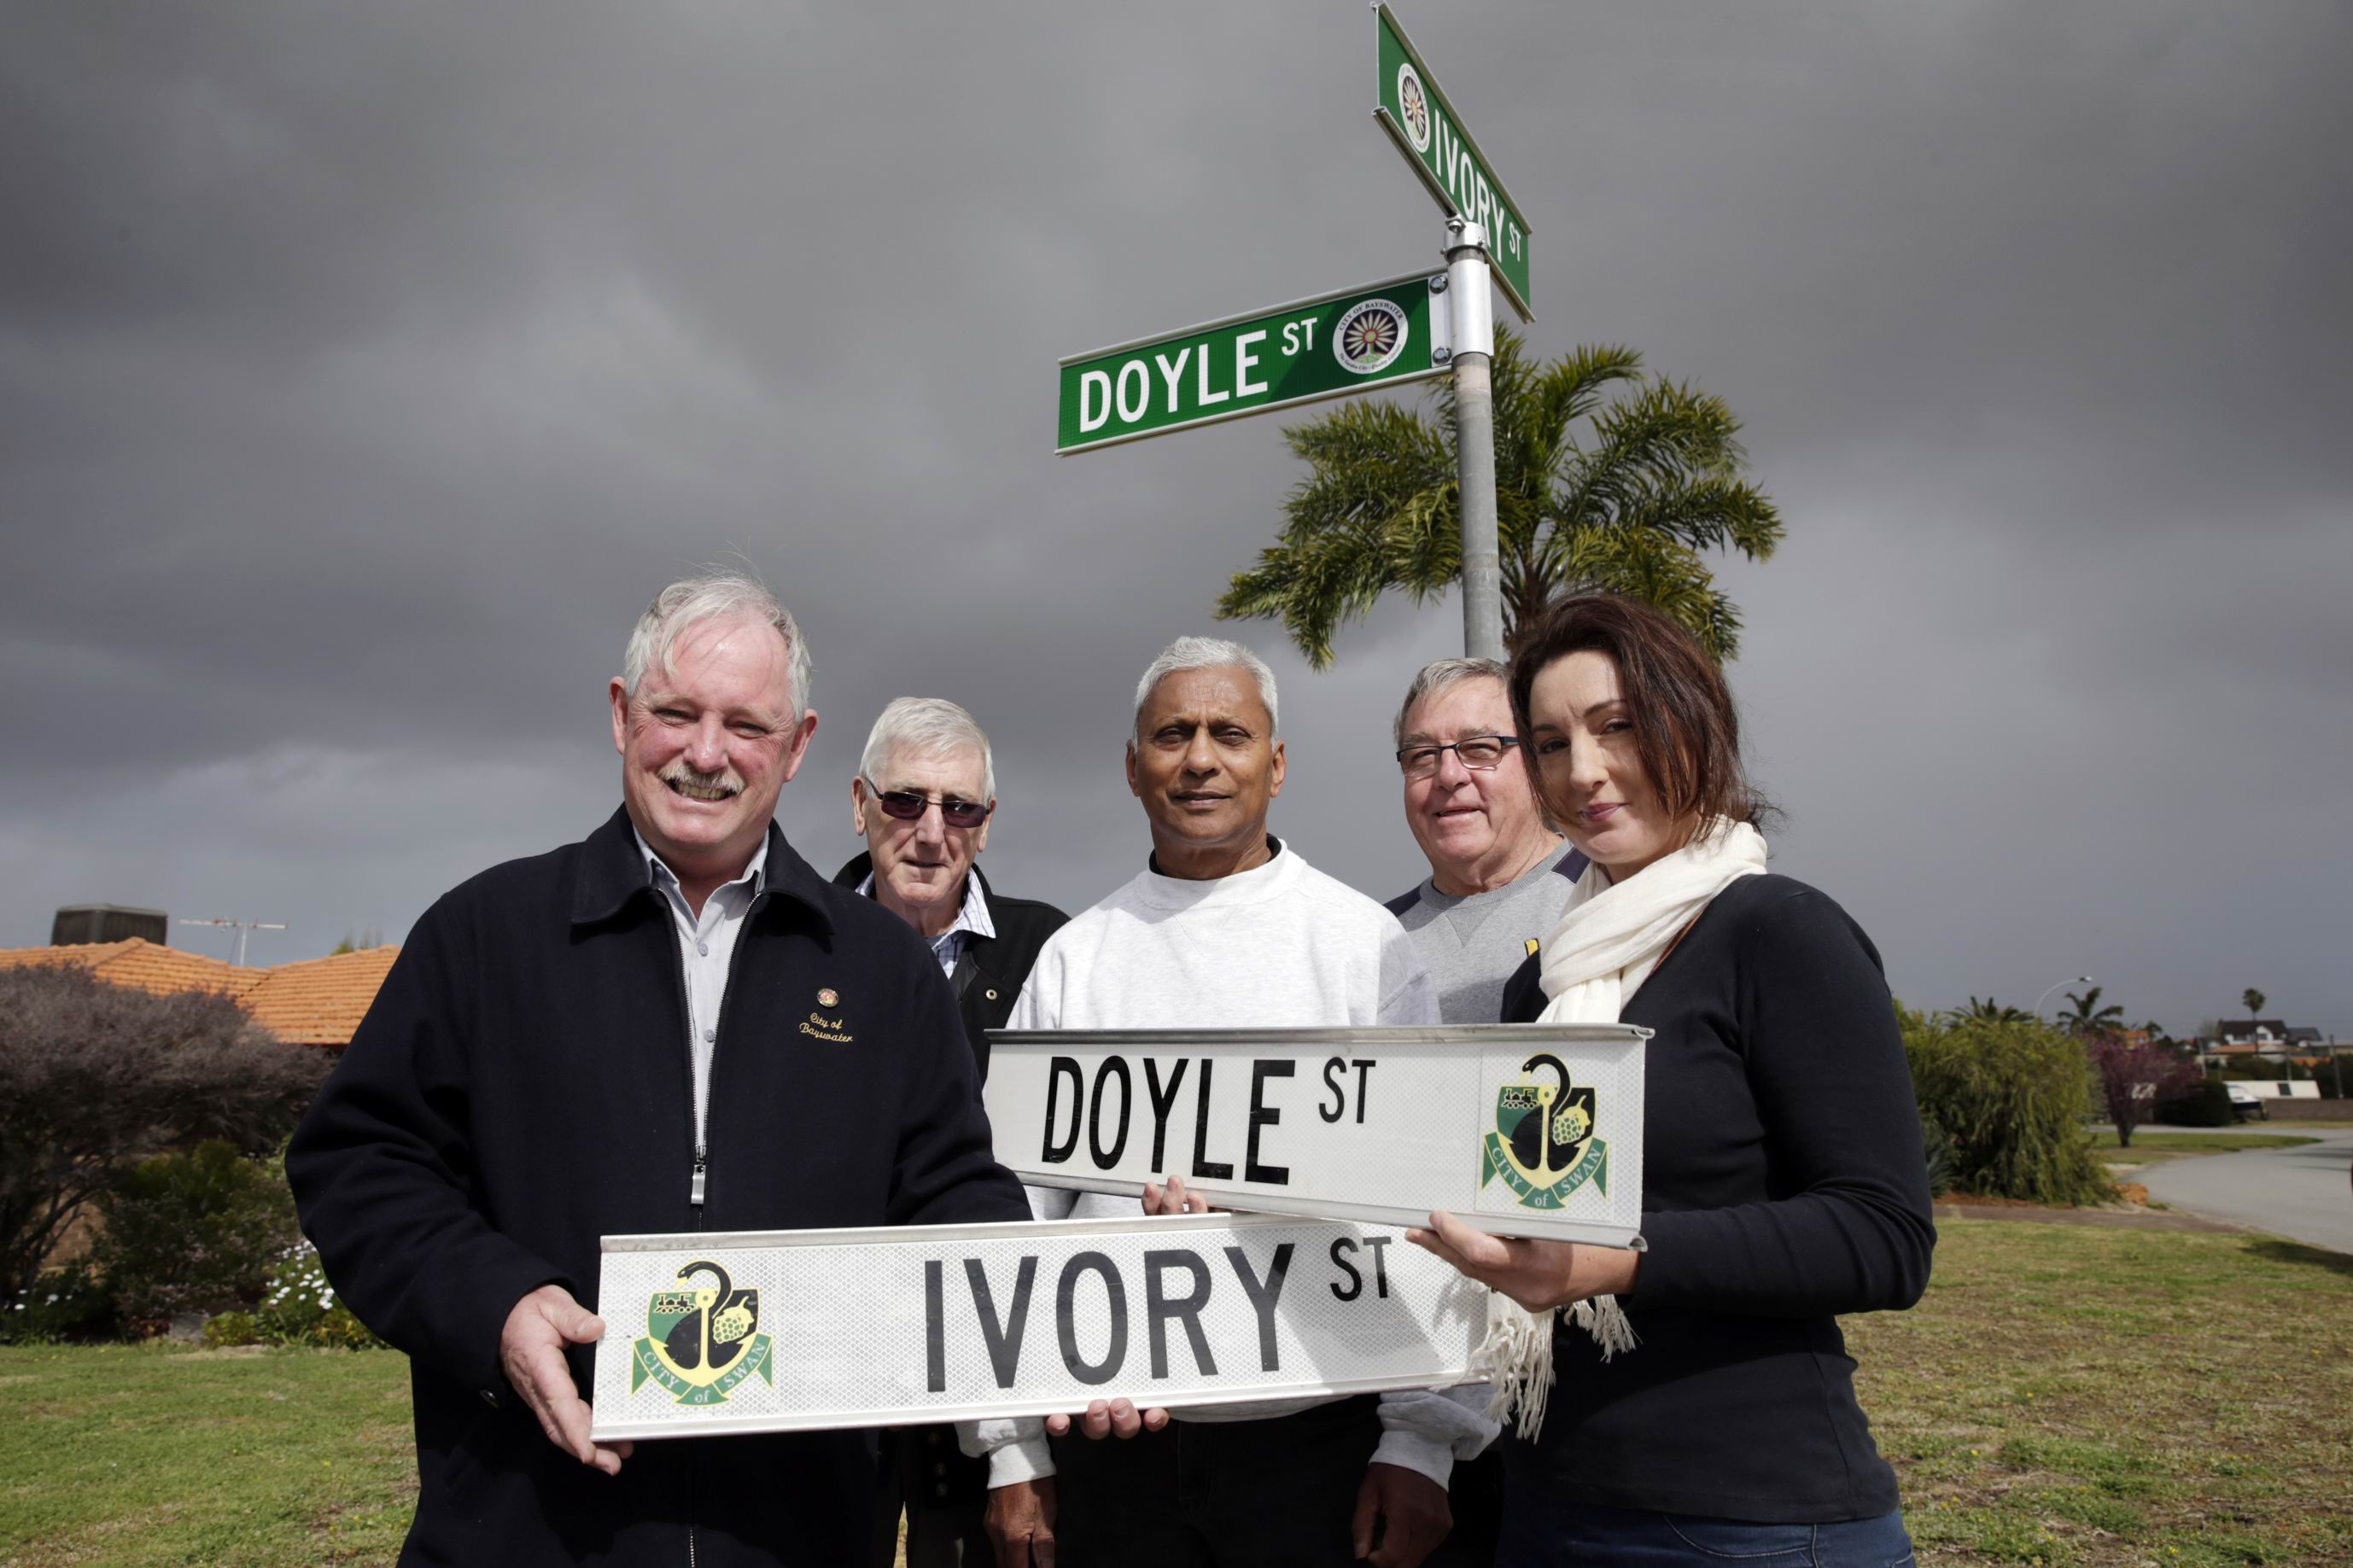 Bayswater Mayor  Barry McKenna with local residents L-R Doug McLennan, Viv Goves, Rob davey and Helene Kayes. After 20 years of campaiging, the suburb of Noranda is now part of the City of Bayswater